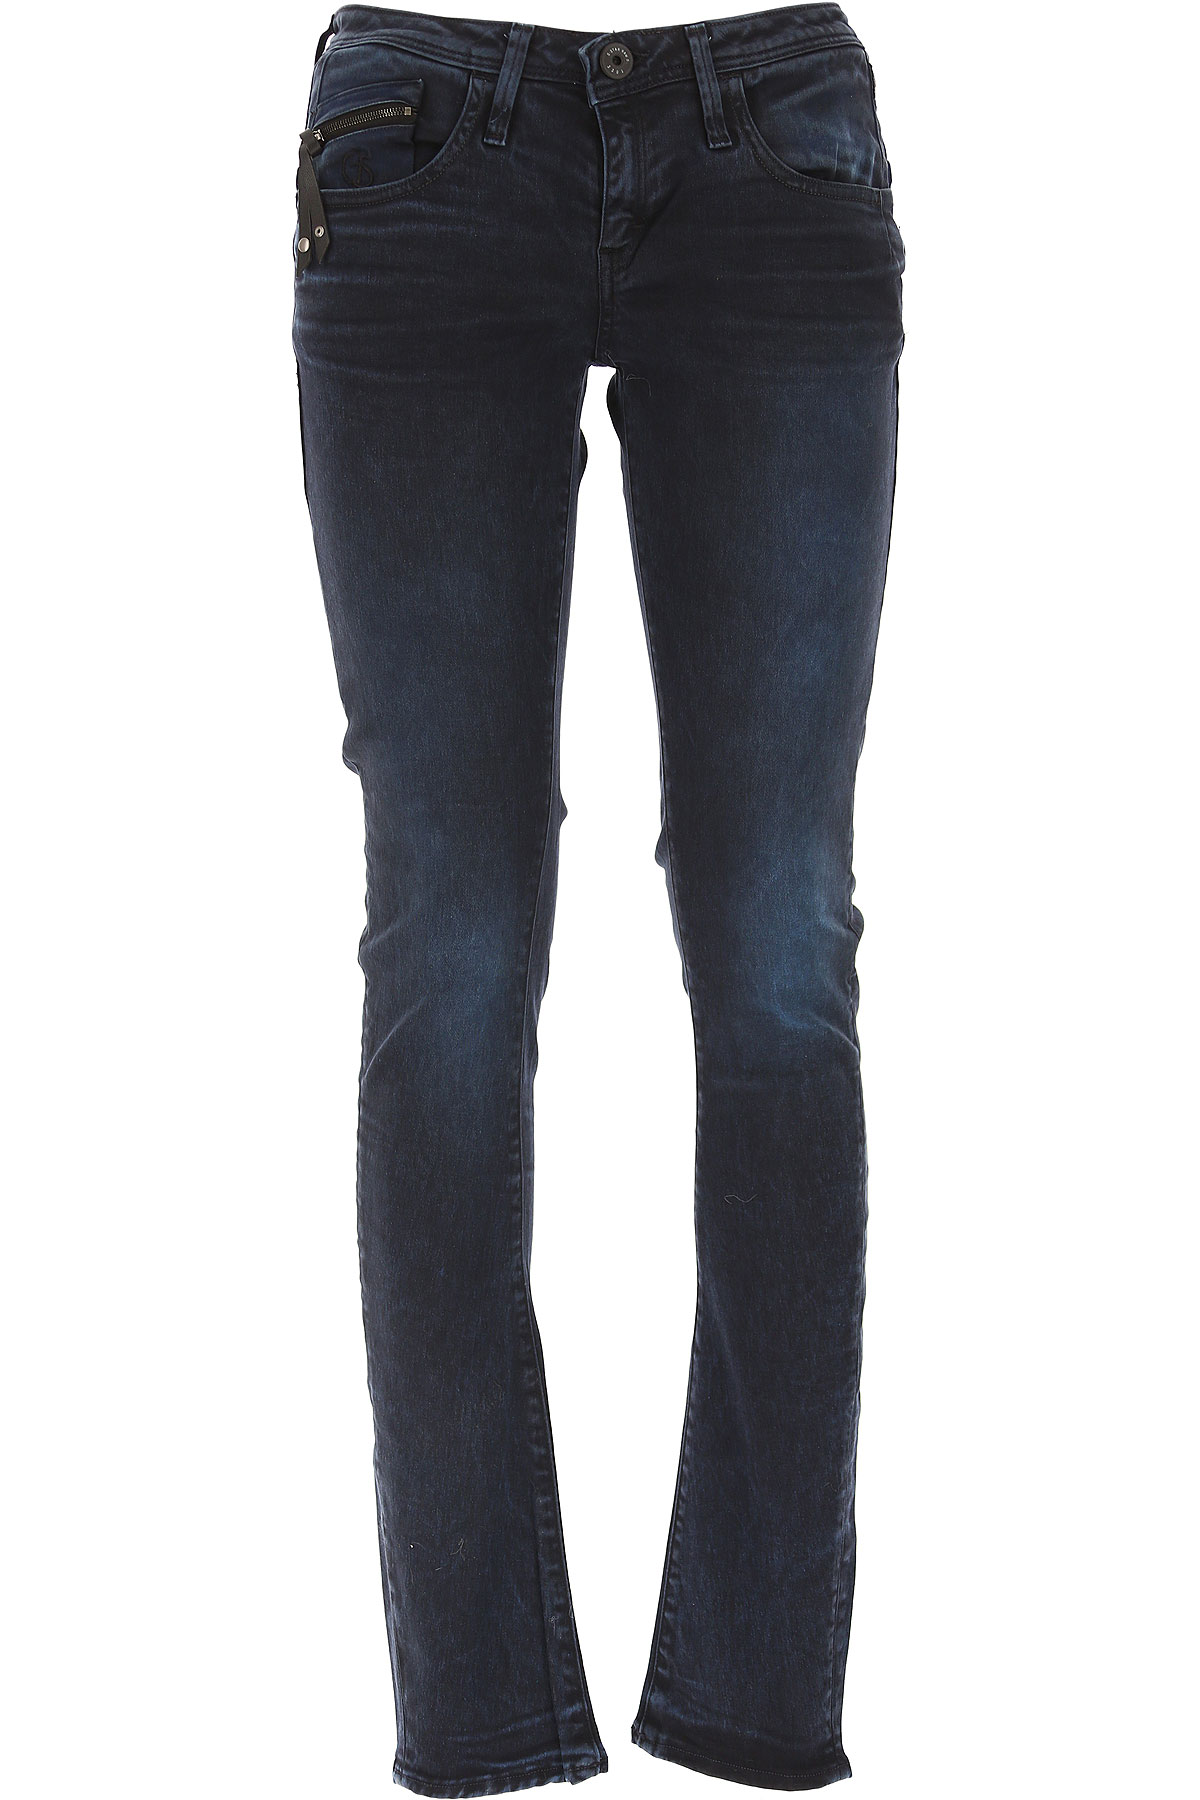 Image of G-Star Jeans On Sale in Outlet, Blue, Cotton, 2017, 26 27 28 29 30